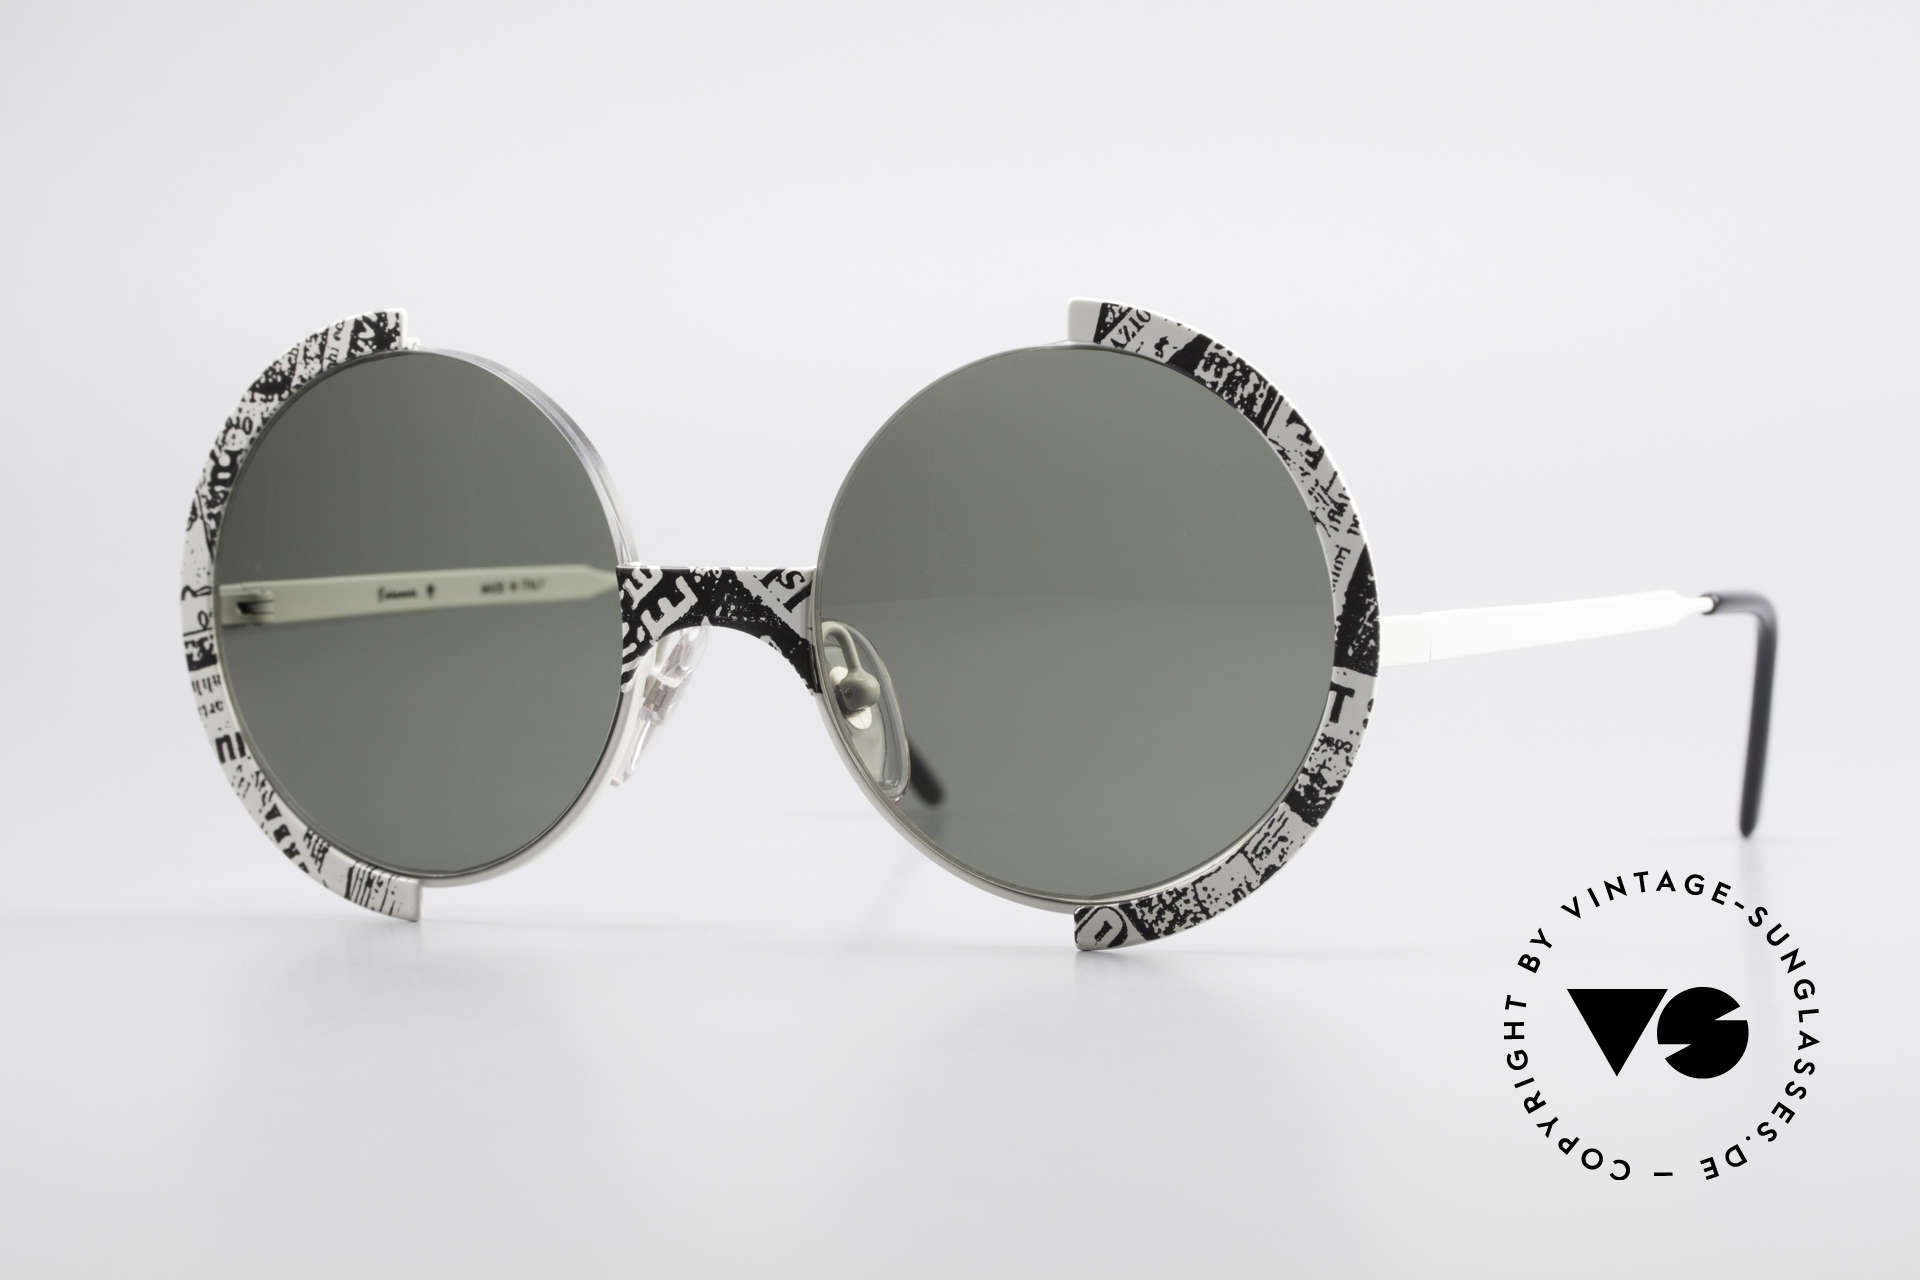 Casanova FC4 Fancy Newspaper Sunglasses, fantastic, fancy 80's Casanova vintage sunglasses, Made for Men and Women